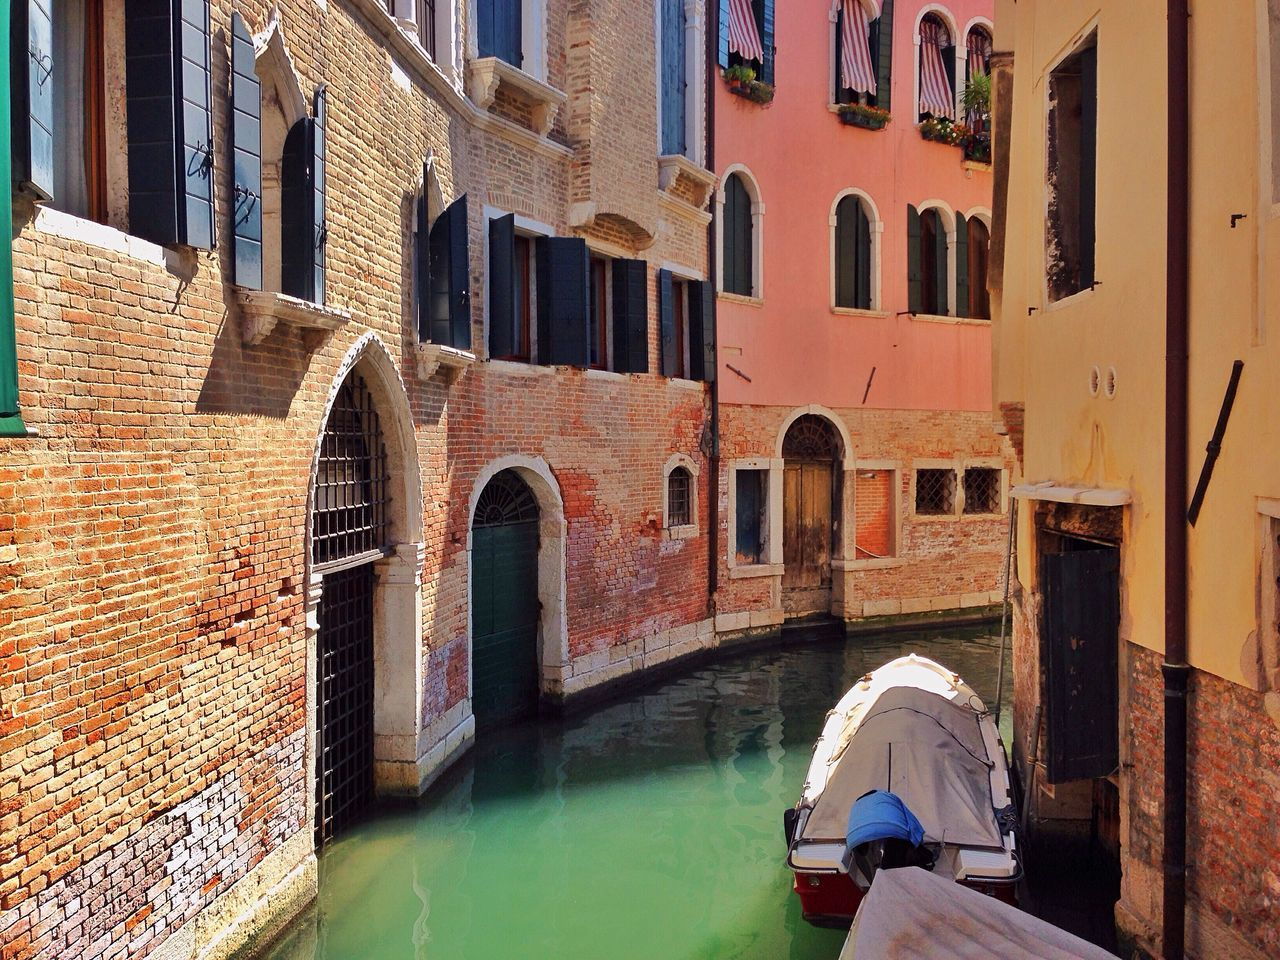 Colorful Colors City Cityscapes Embrace Urban Life Lifestyle City Life Building Boats Adventure Buddies Sea Water Old Town Landscape Europe Life Minimal Minimalism Weather Daylight Sunshine Boat Battle Of The Cities The City Light